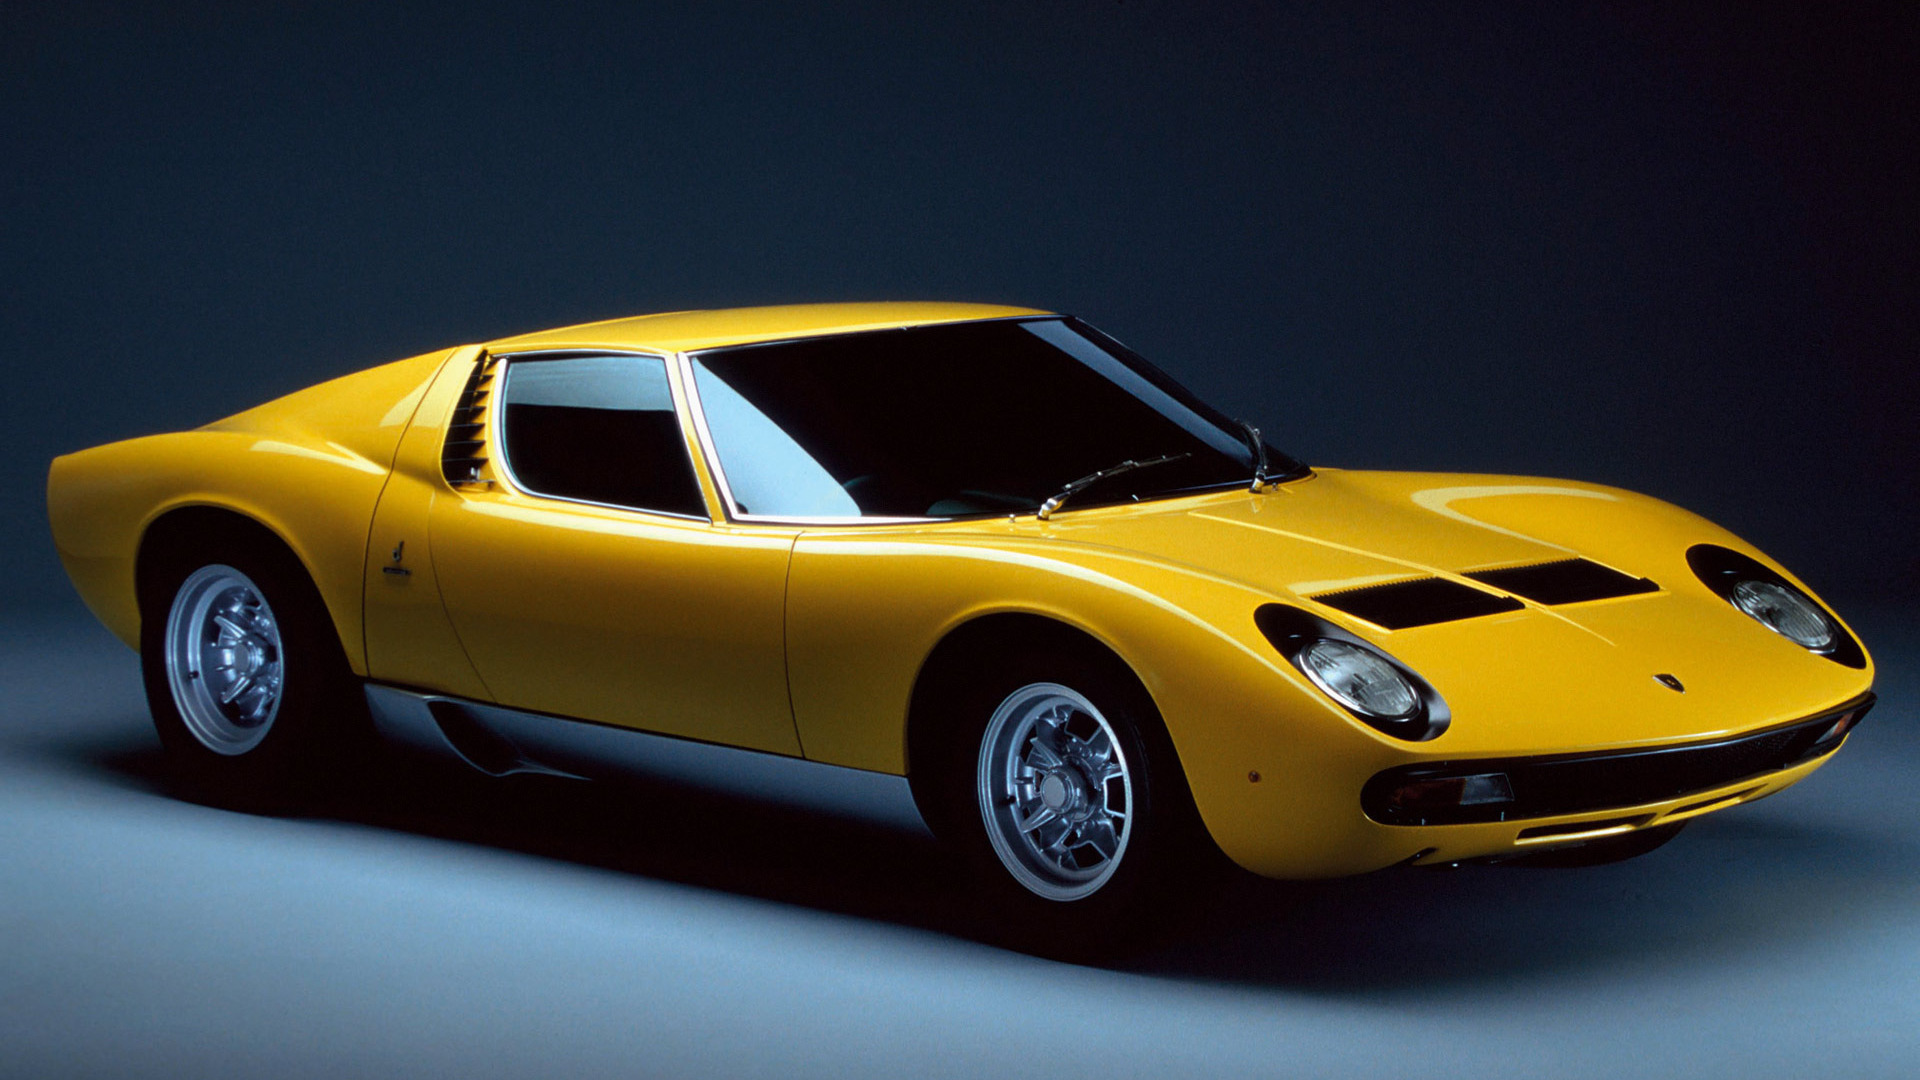 Cheap Cars For Sale >> LAMBORGHINI MIURA - Nomana Bakes